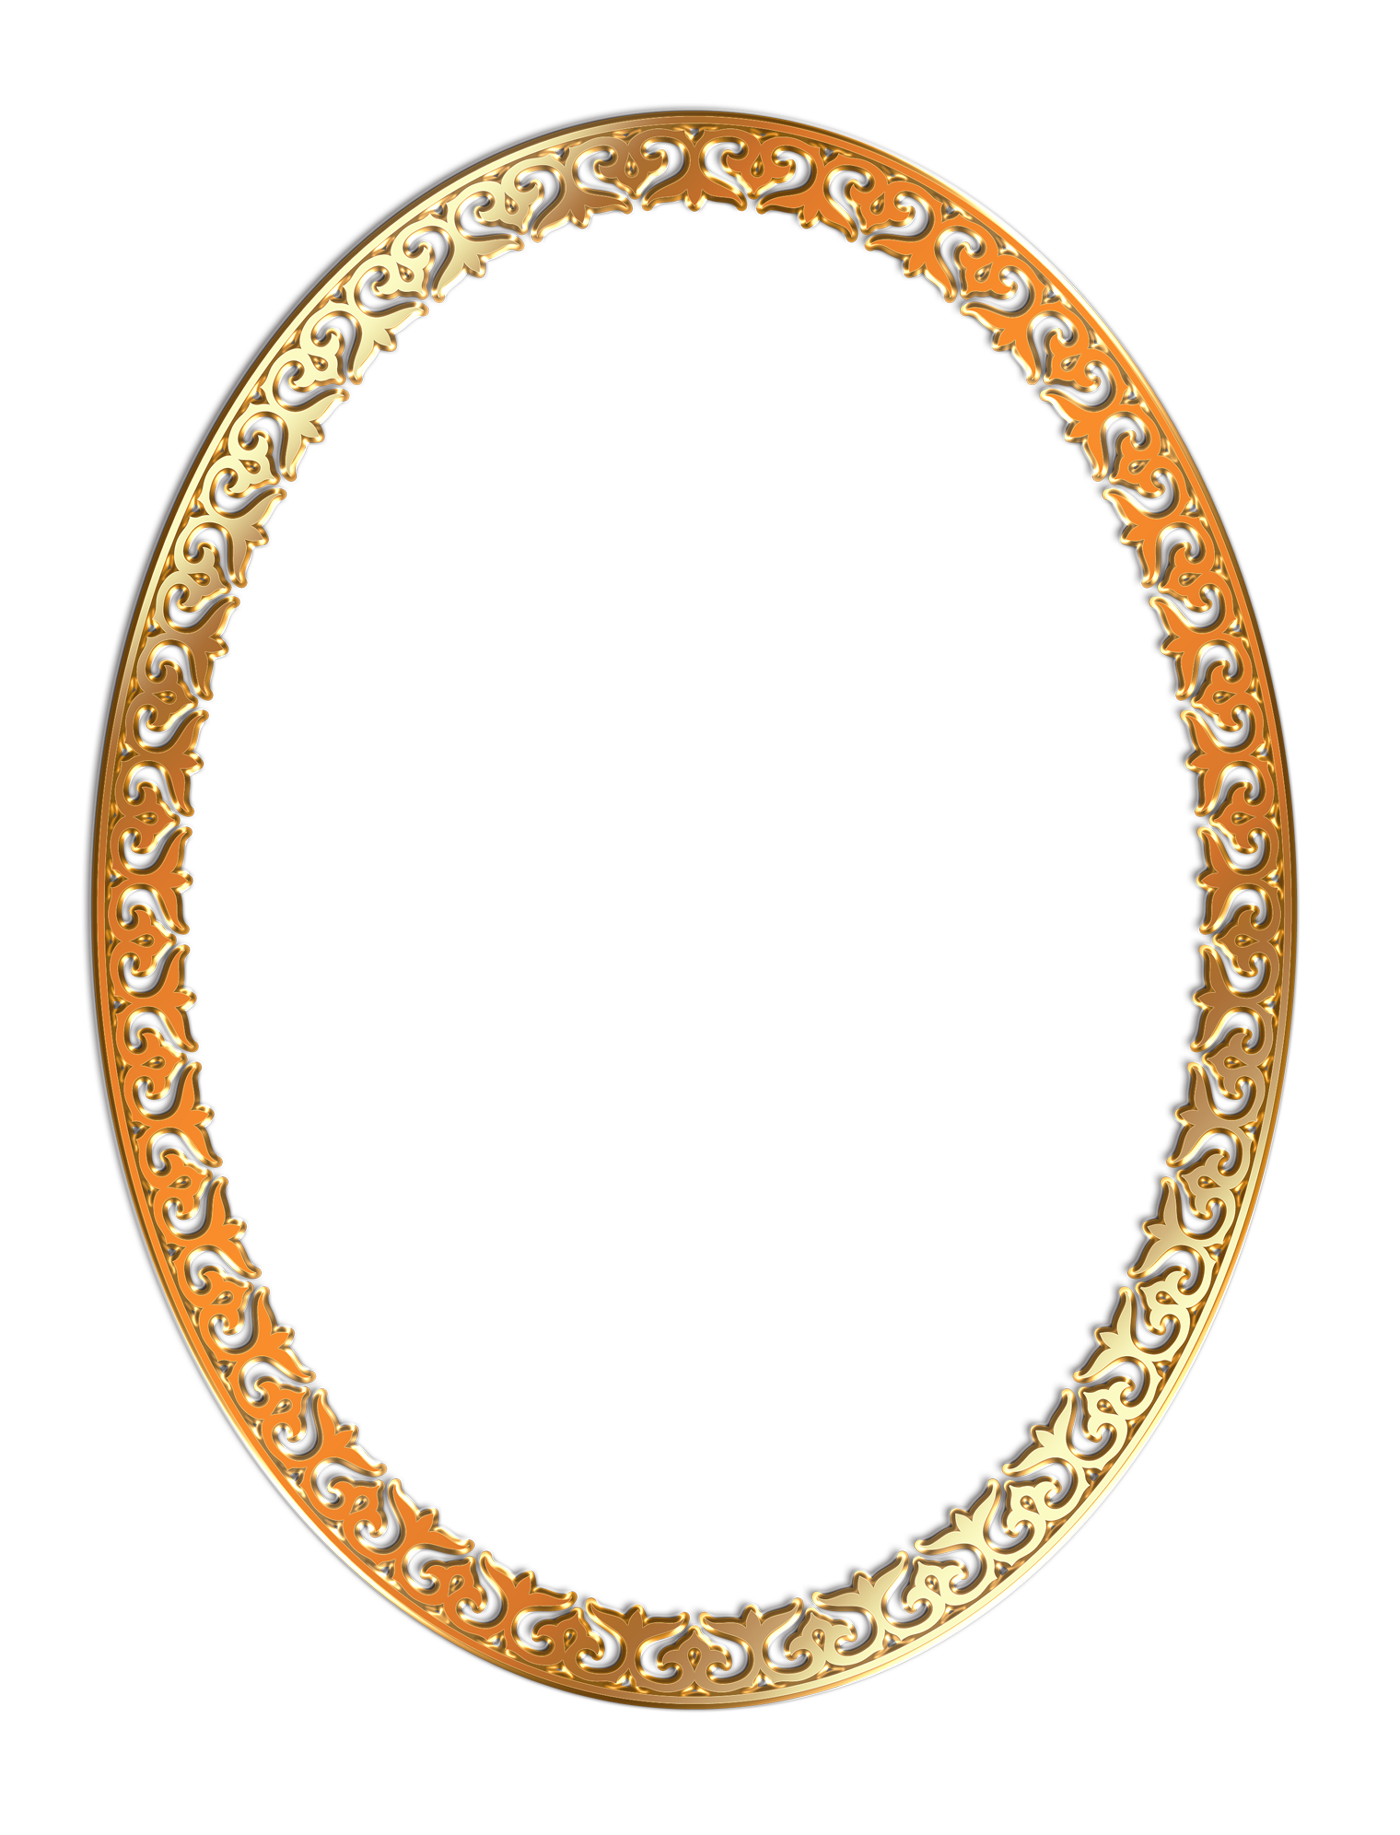 Round Frame PNG Free Download.